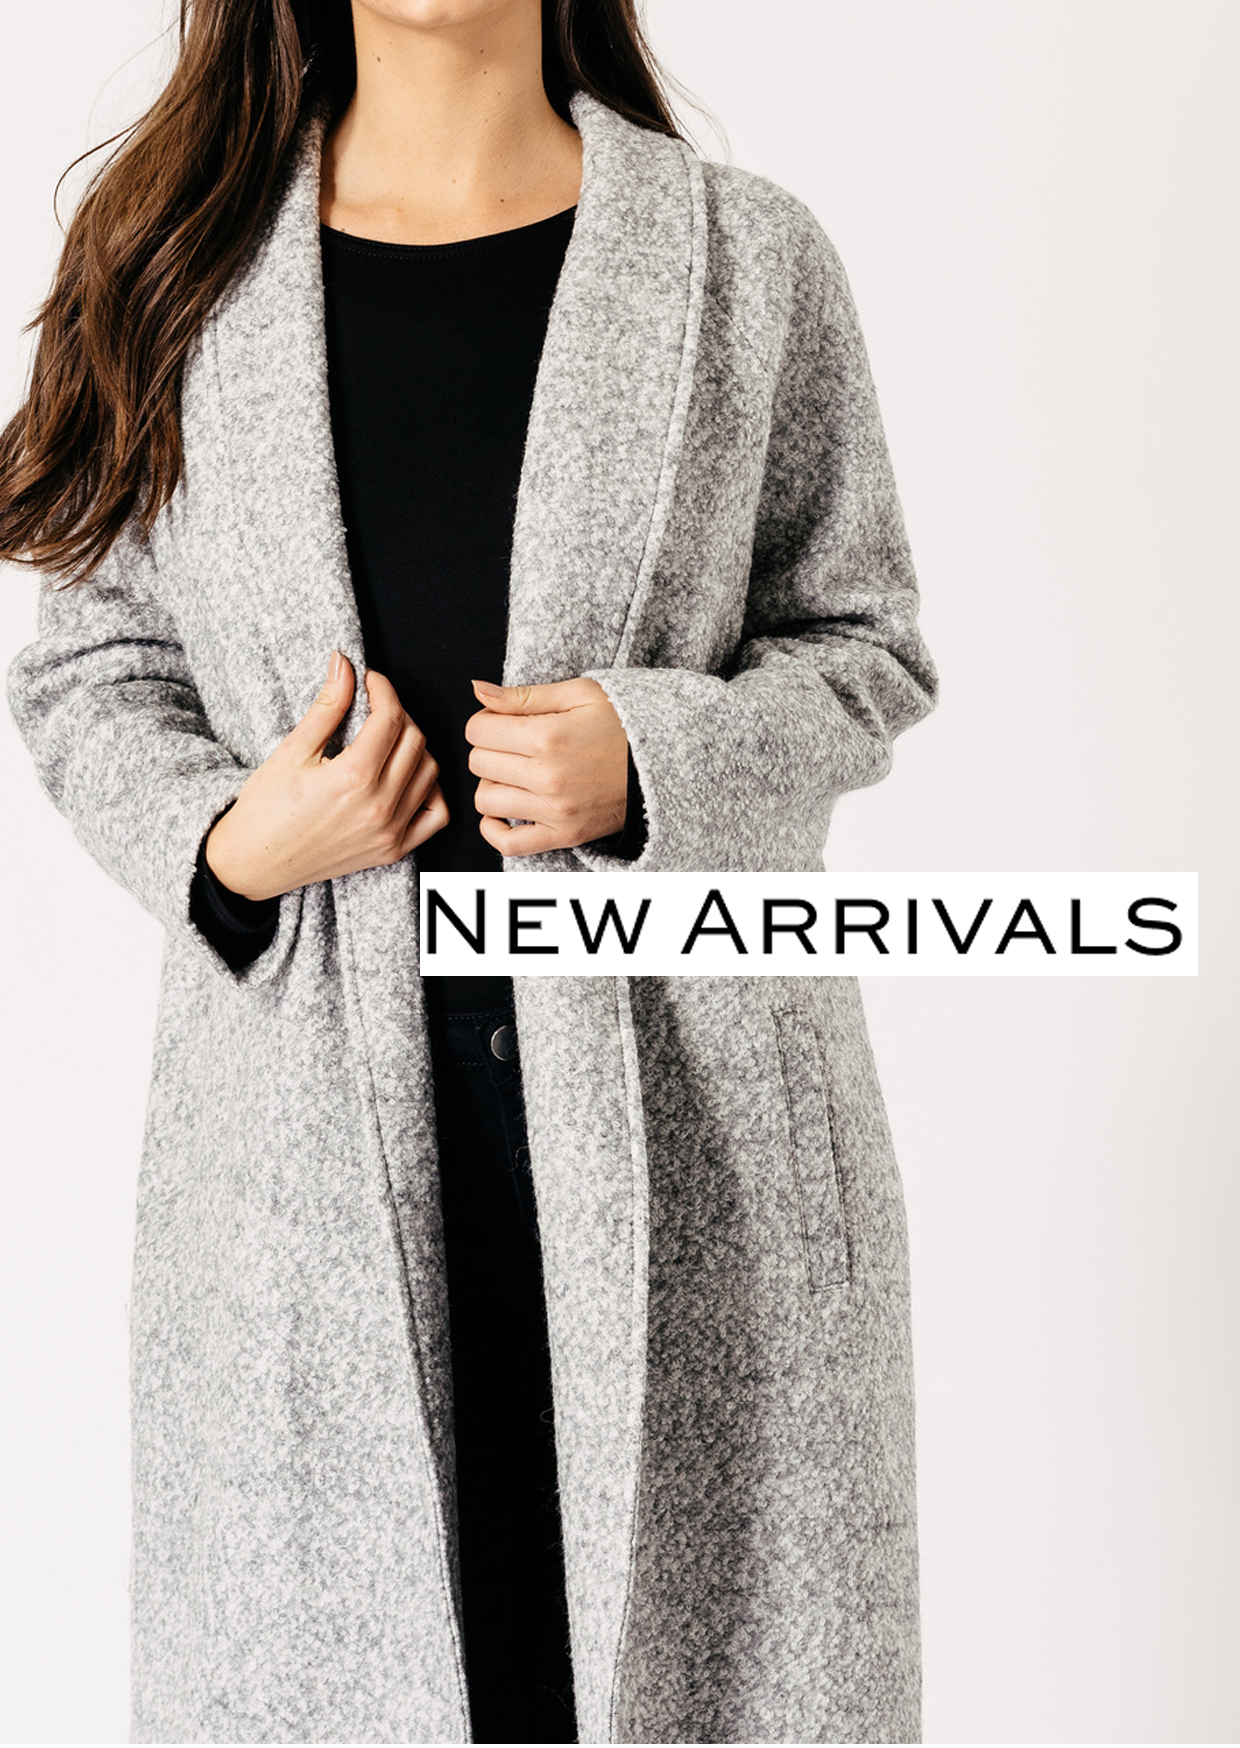 new-arrivals-smallbanner1sted-copy.jpg